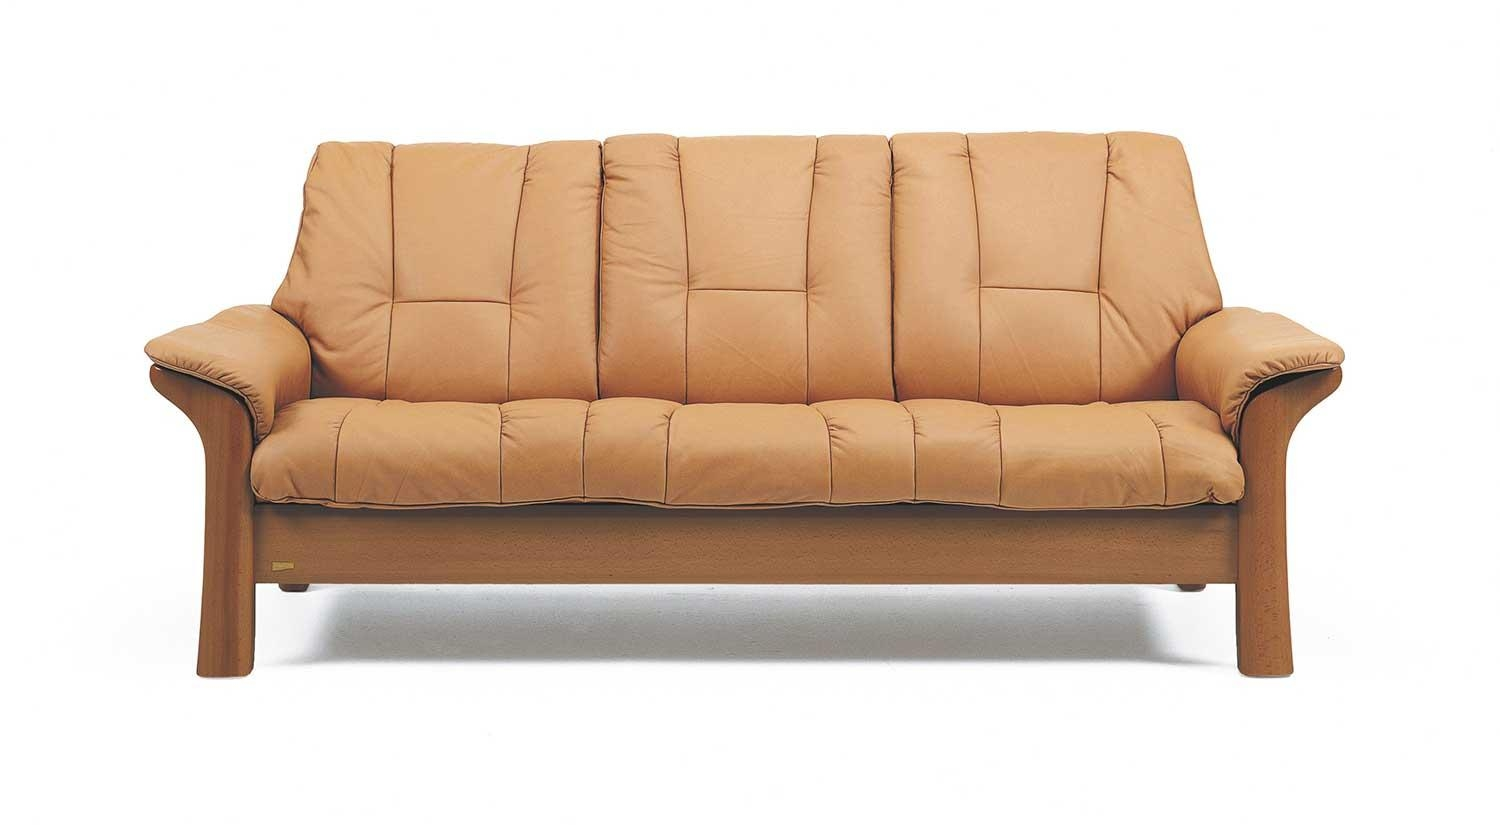 Circle Furniture – Windsor Stressless Loveseat | Ekornes Sofas Ma Regarding Windsor Sofas (Image 2 of 20)